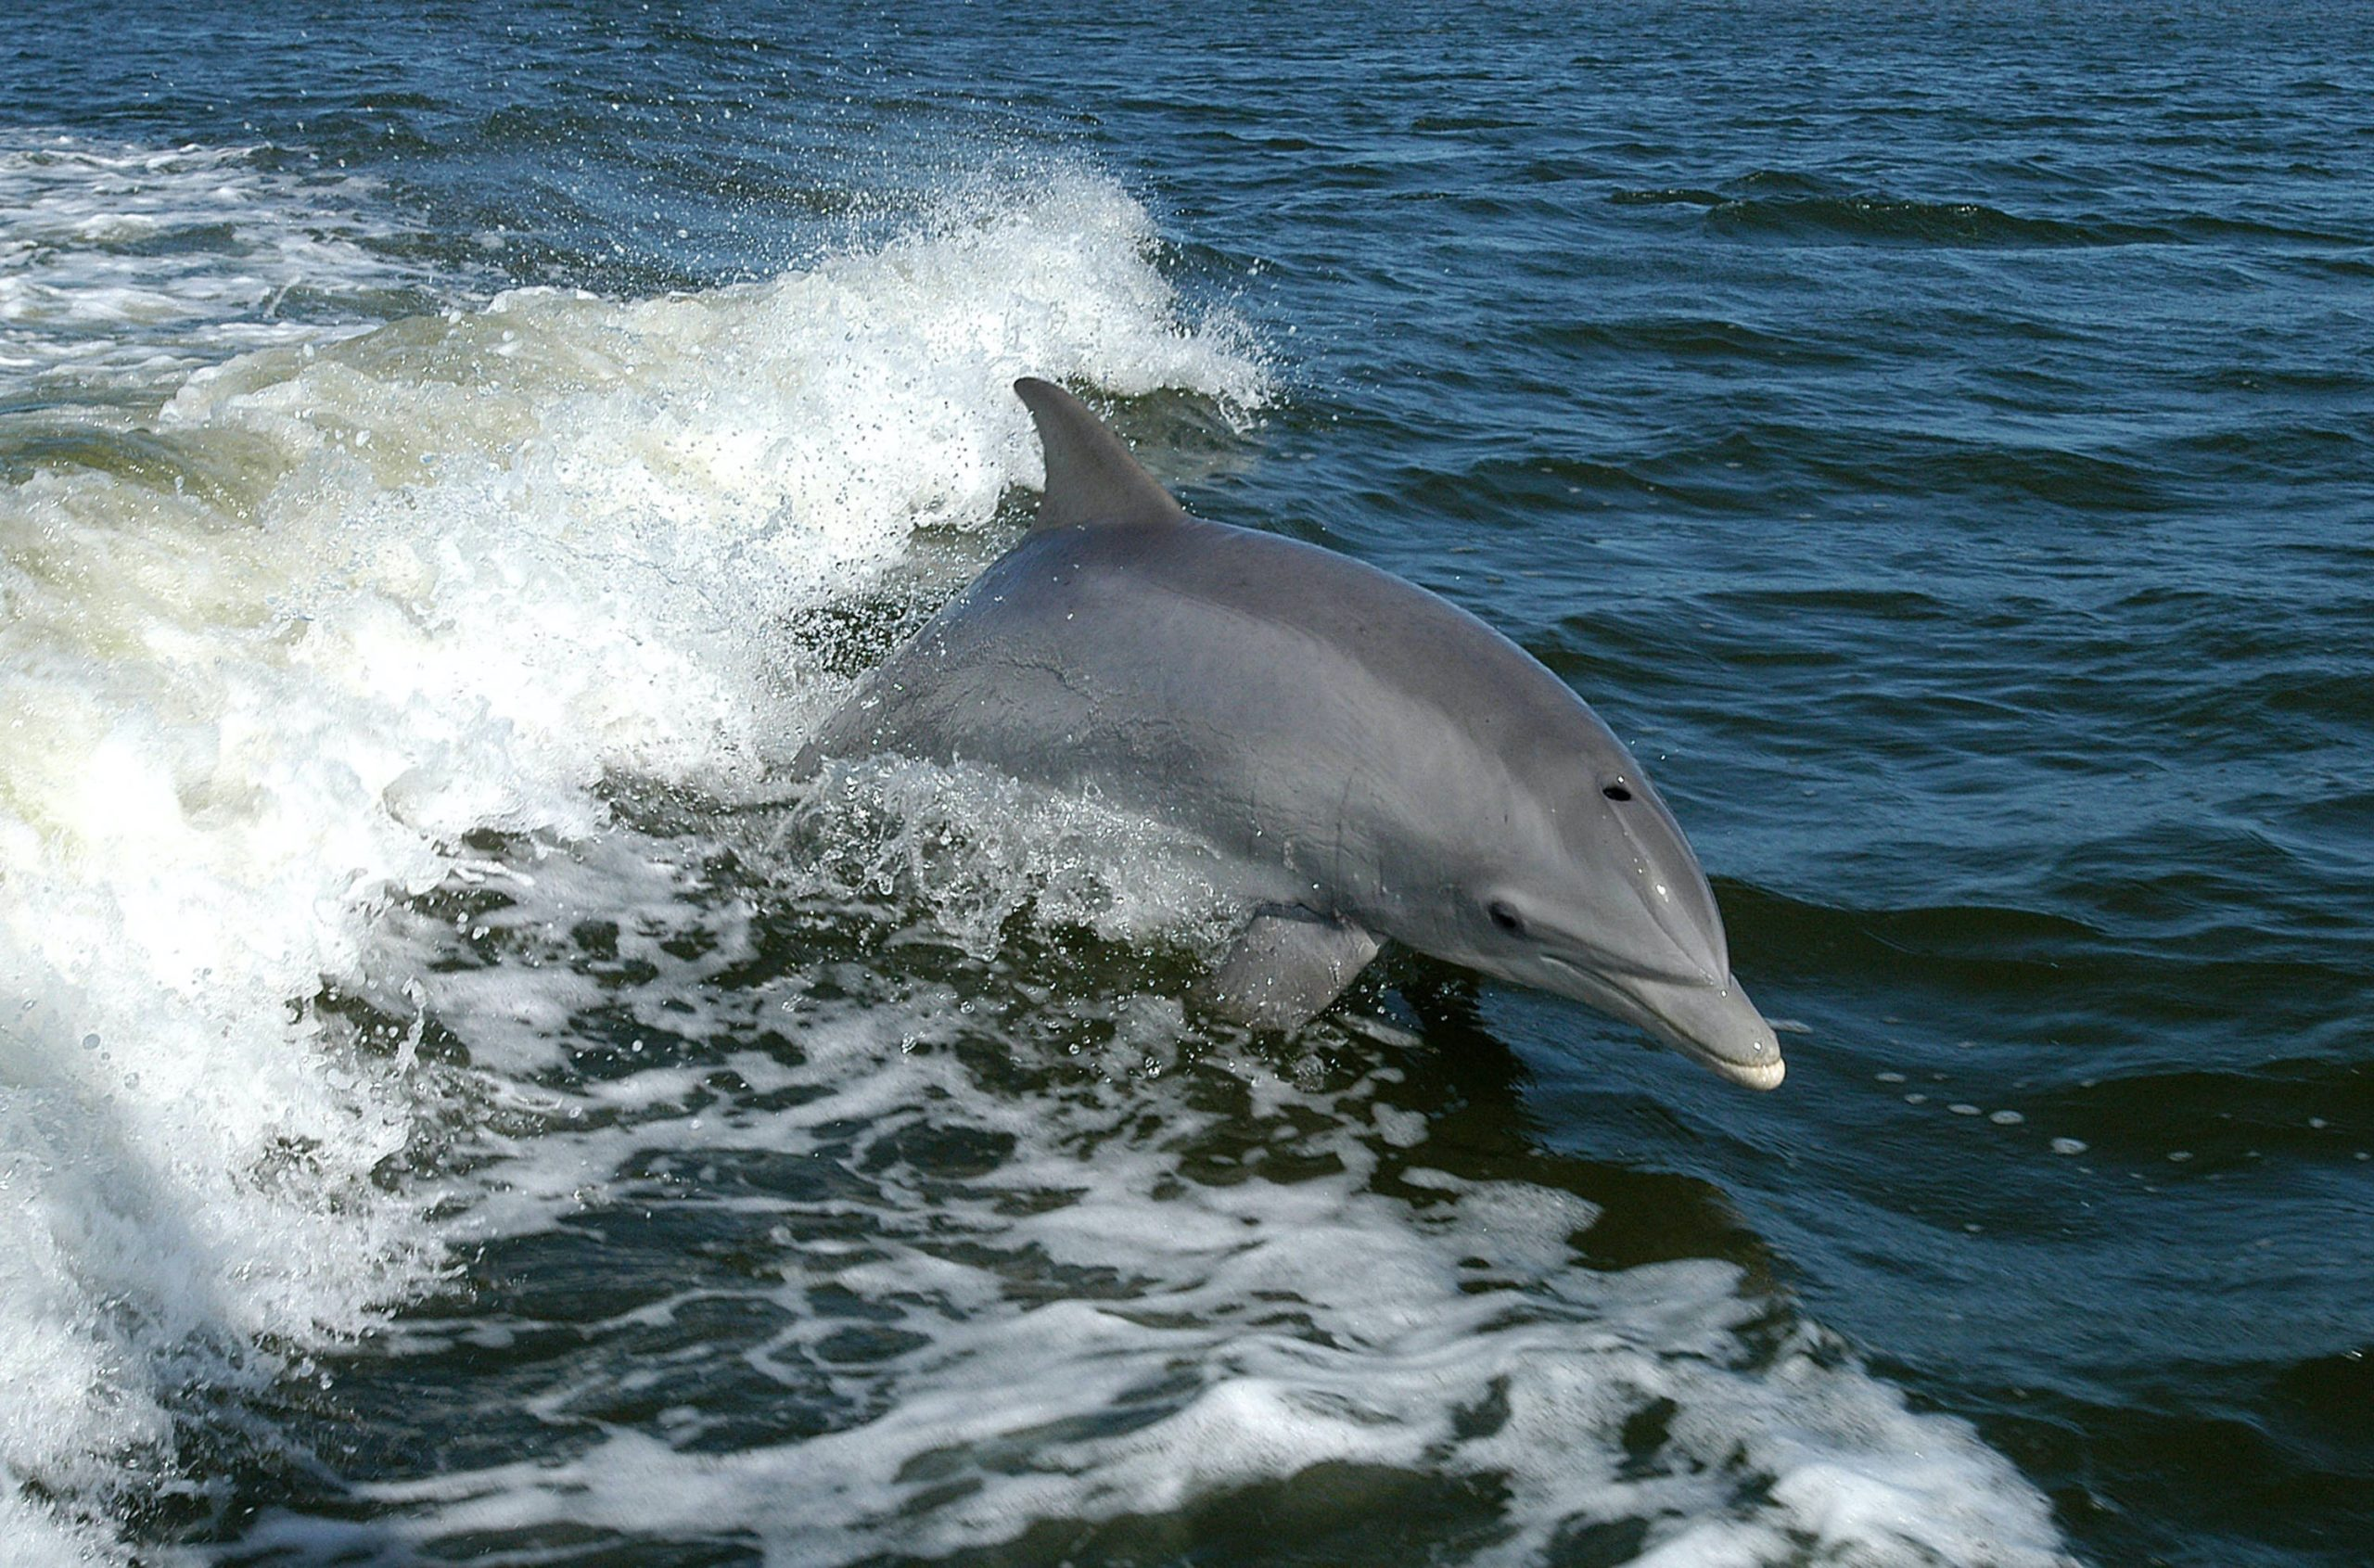 A bottlenose dolphin playing in a boat's bow wave.